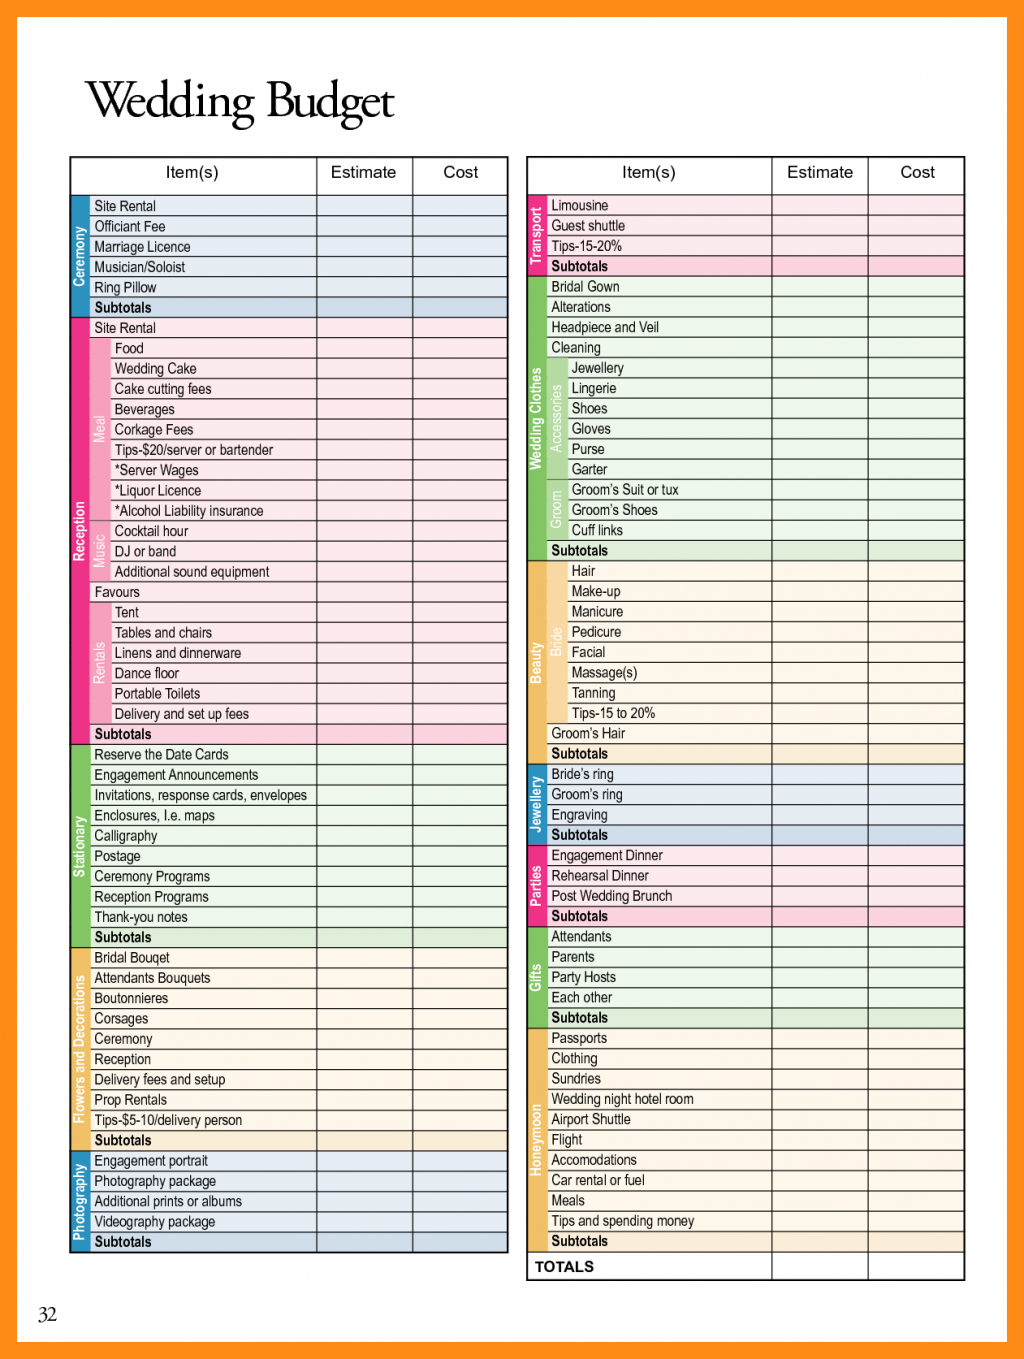 How To Make A Wedding Budget Spreadsheet Throughout Example Of Wedding Budget Spreadsheet Google Docs Cost Template As